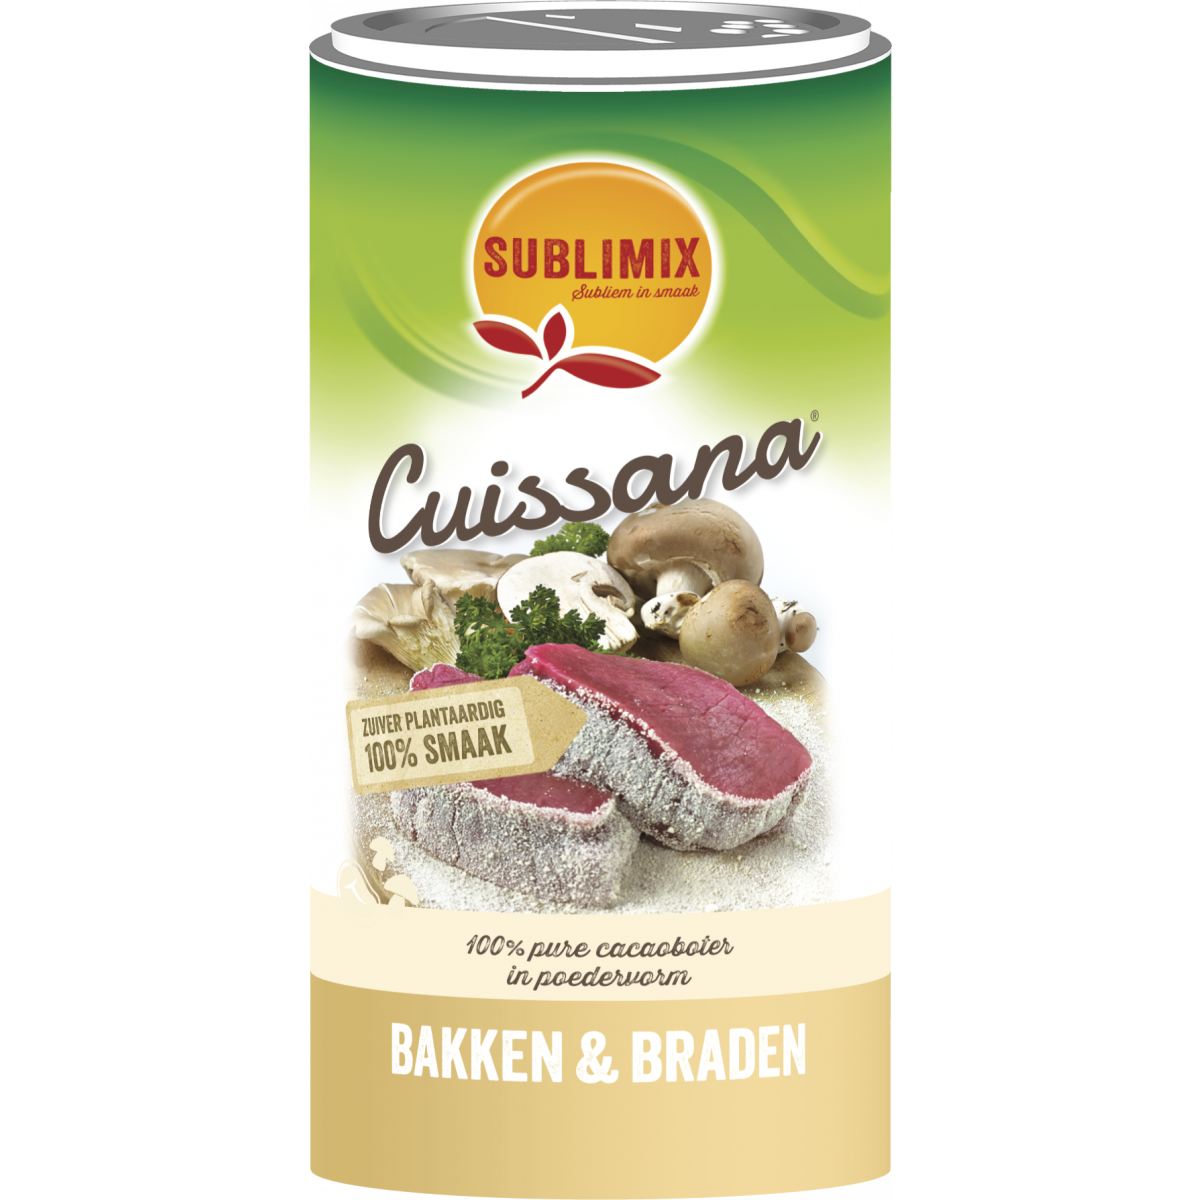 Cuissana Cacaoboter (T.H.T. 14-8-2019)